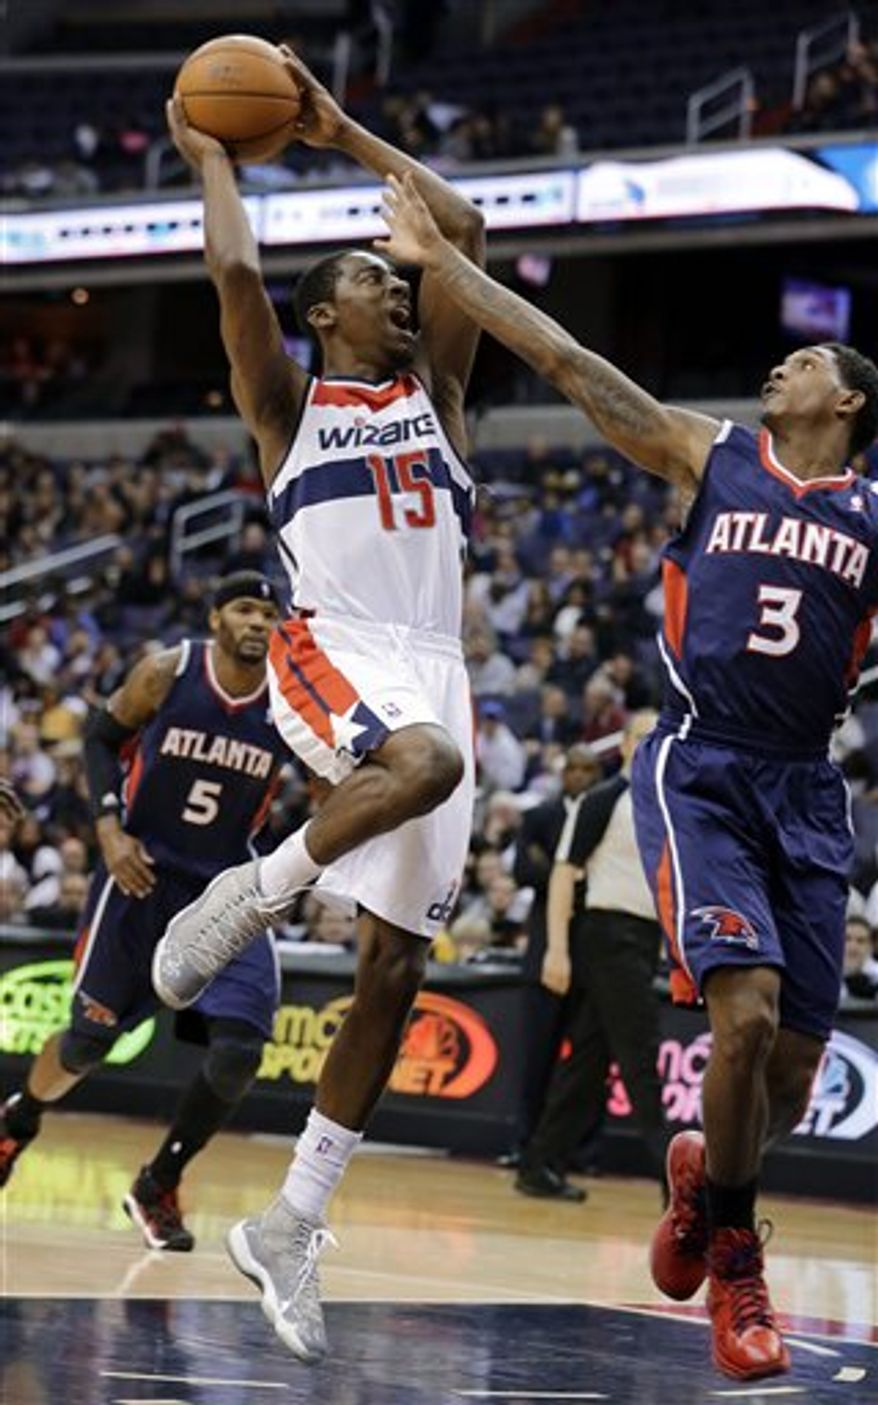 Washington Wizards guard Jordan Crawford shoots over Atlanta Hawks guard Louis Williams during overtime of an NBA basketball game Tuesday, Dec. 18, 2012, in Washington. Crawford had 27 points, but the Hawks won 100-95 in overtime. (AP Photo/Alex Brandon)